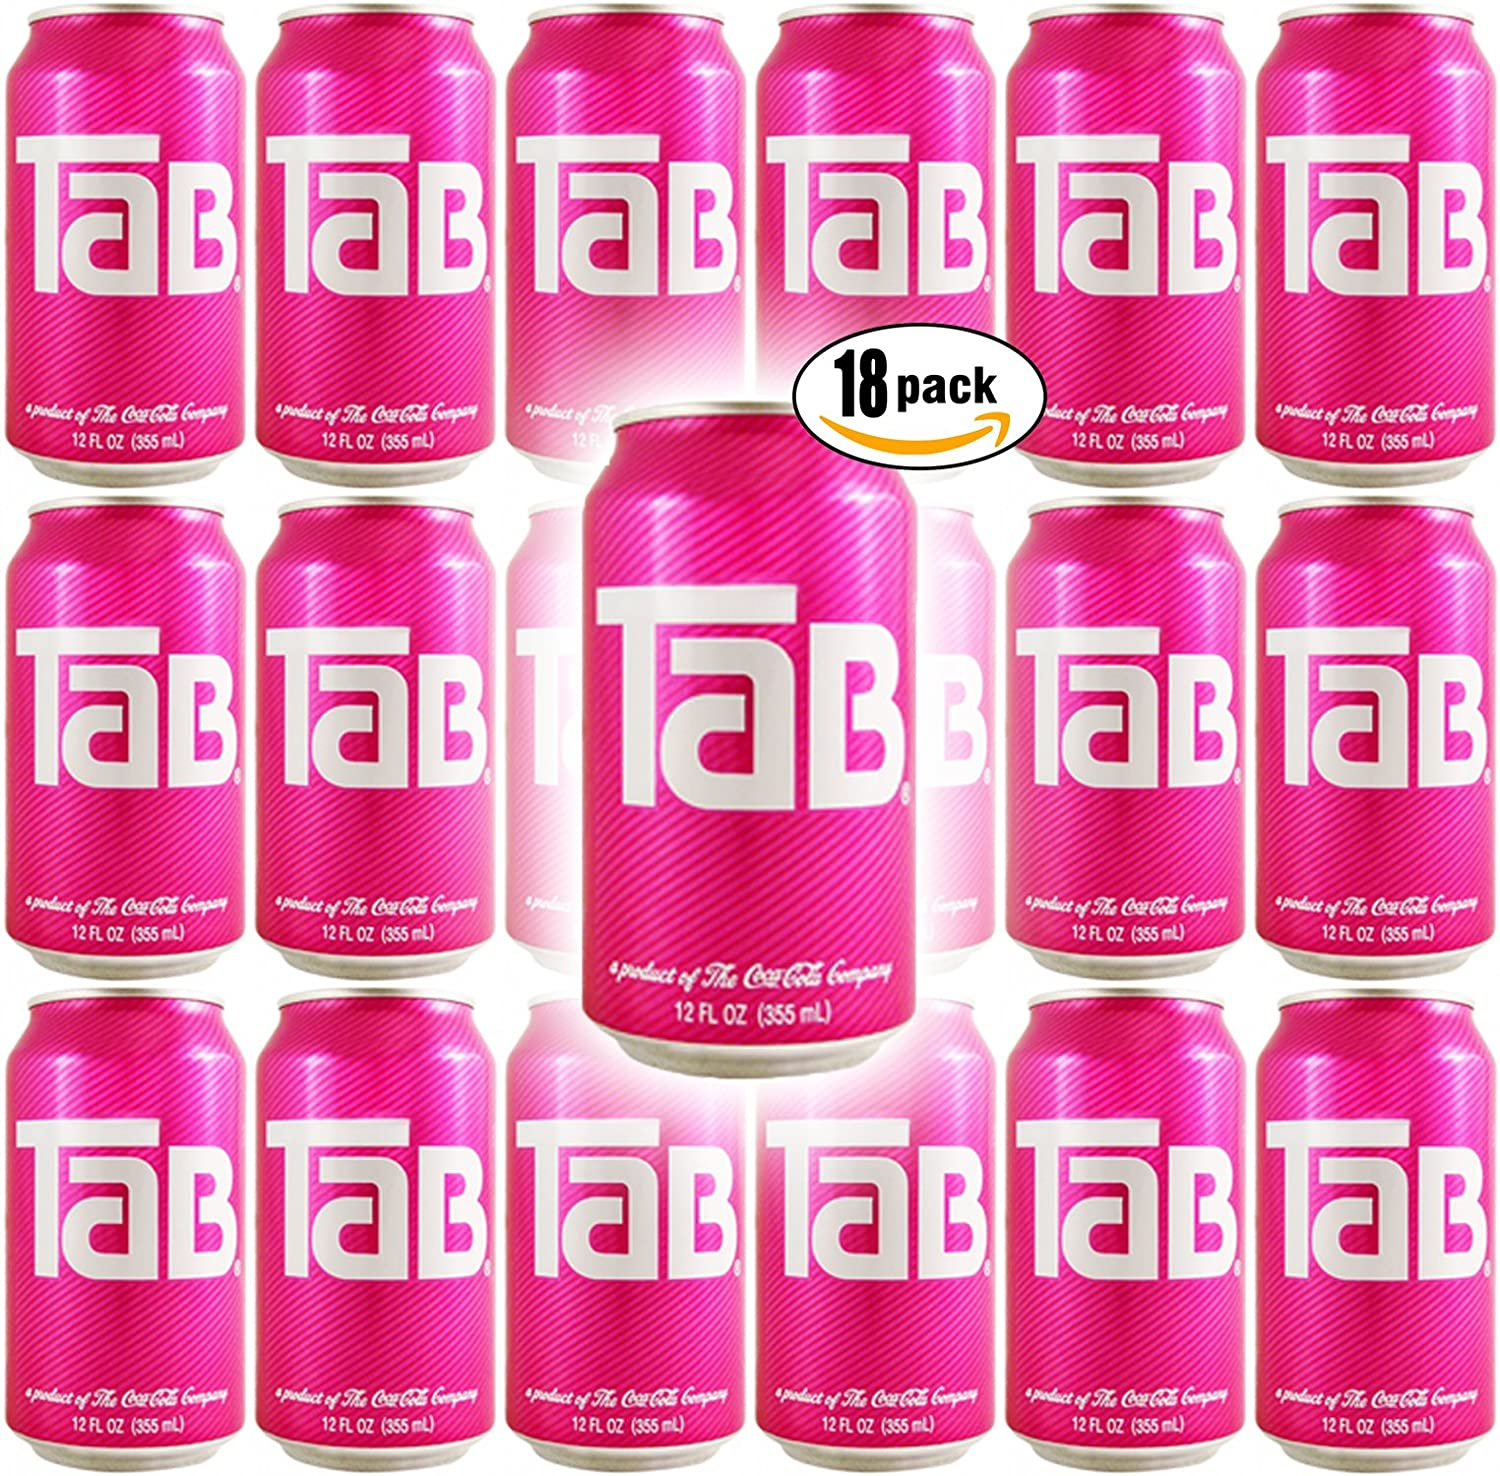 TaB Diet Cola Soda, 12oz Can (Pack of 18, Total of 216 Oz)